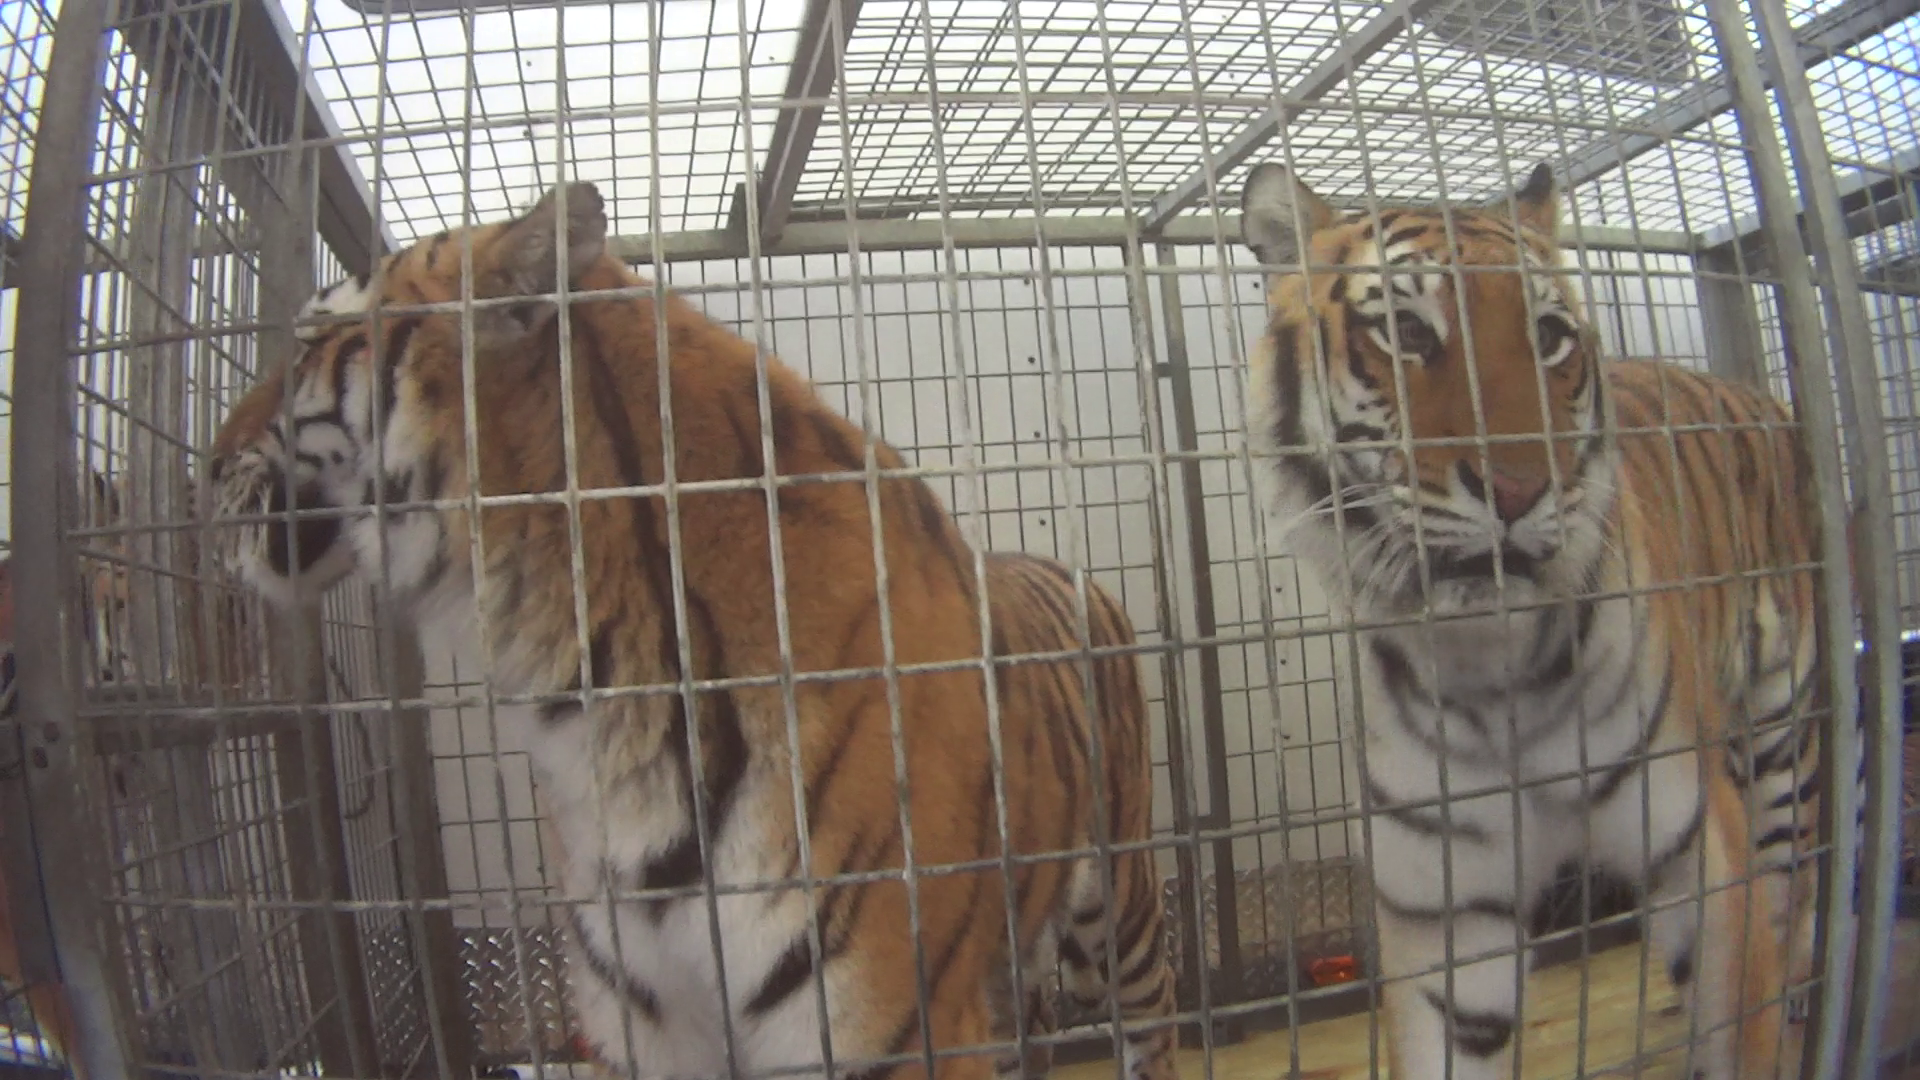 Big Cats in cages